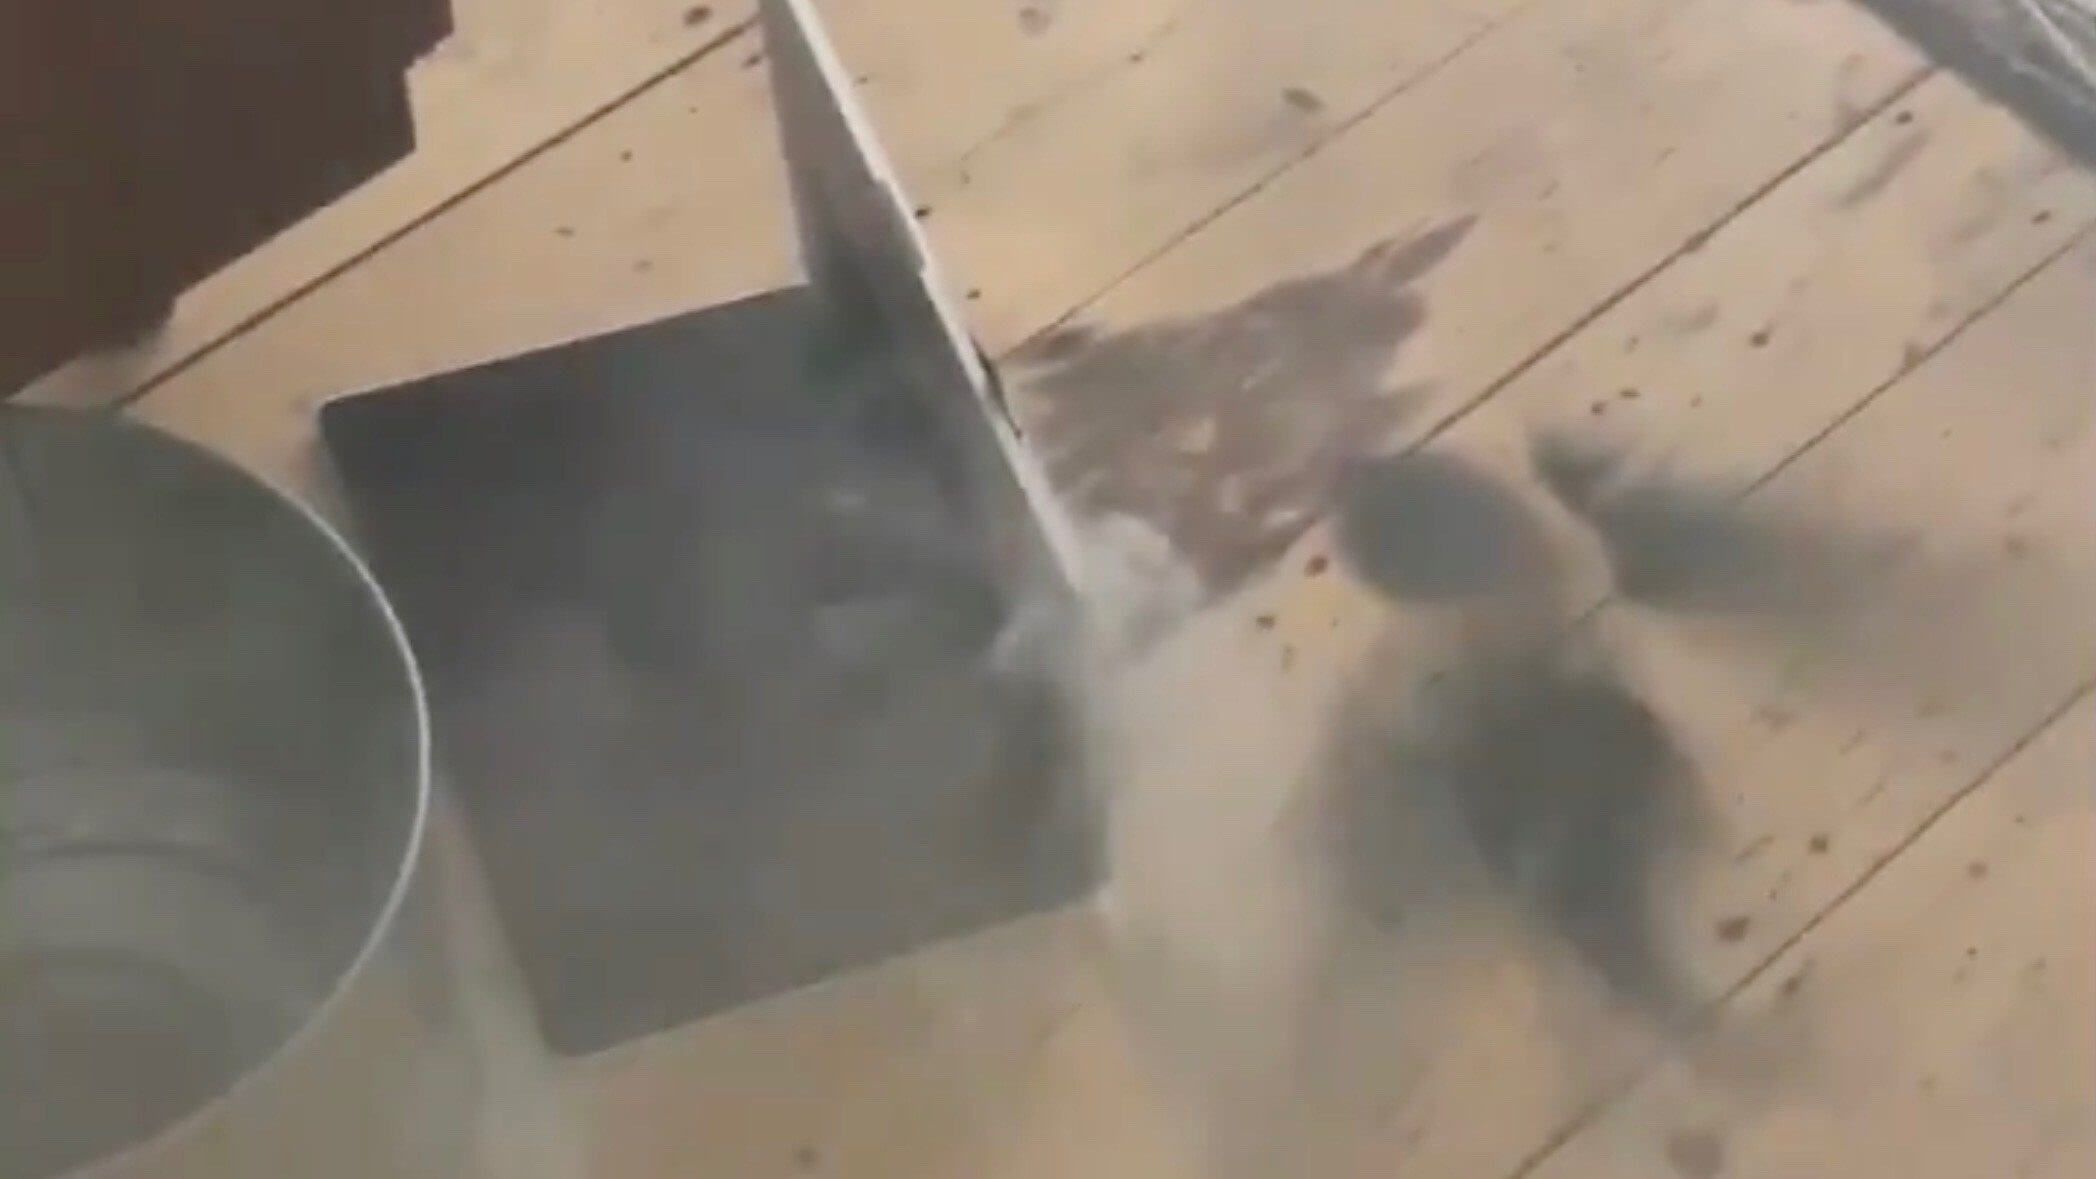 Watch a MacBook Pro pumping out smoke after it exploded during